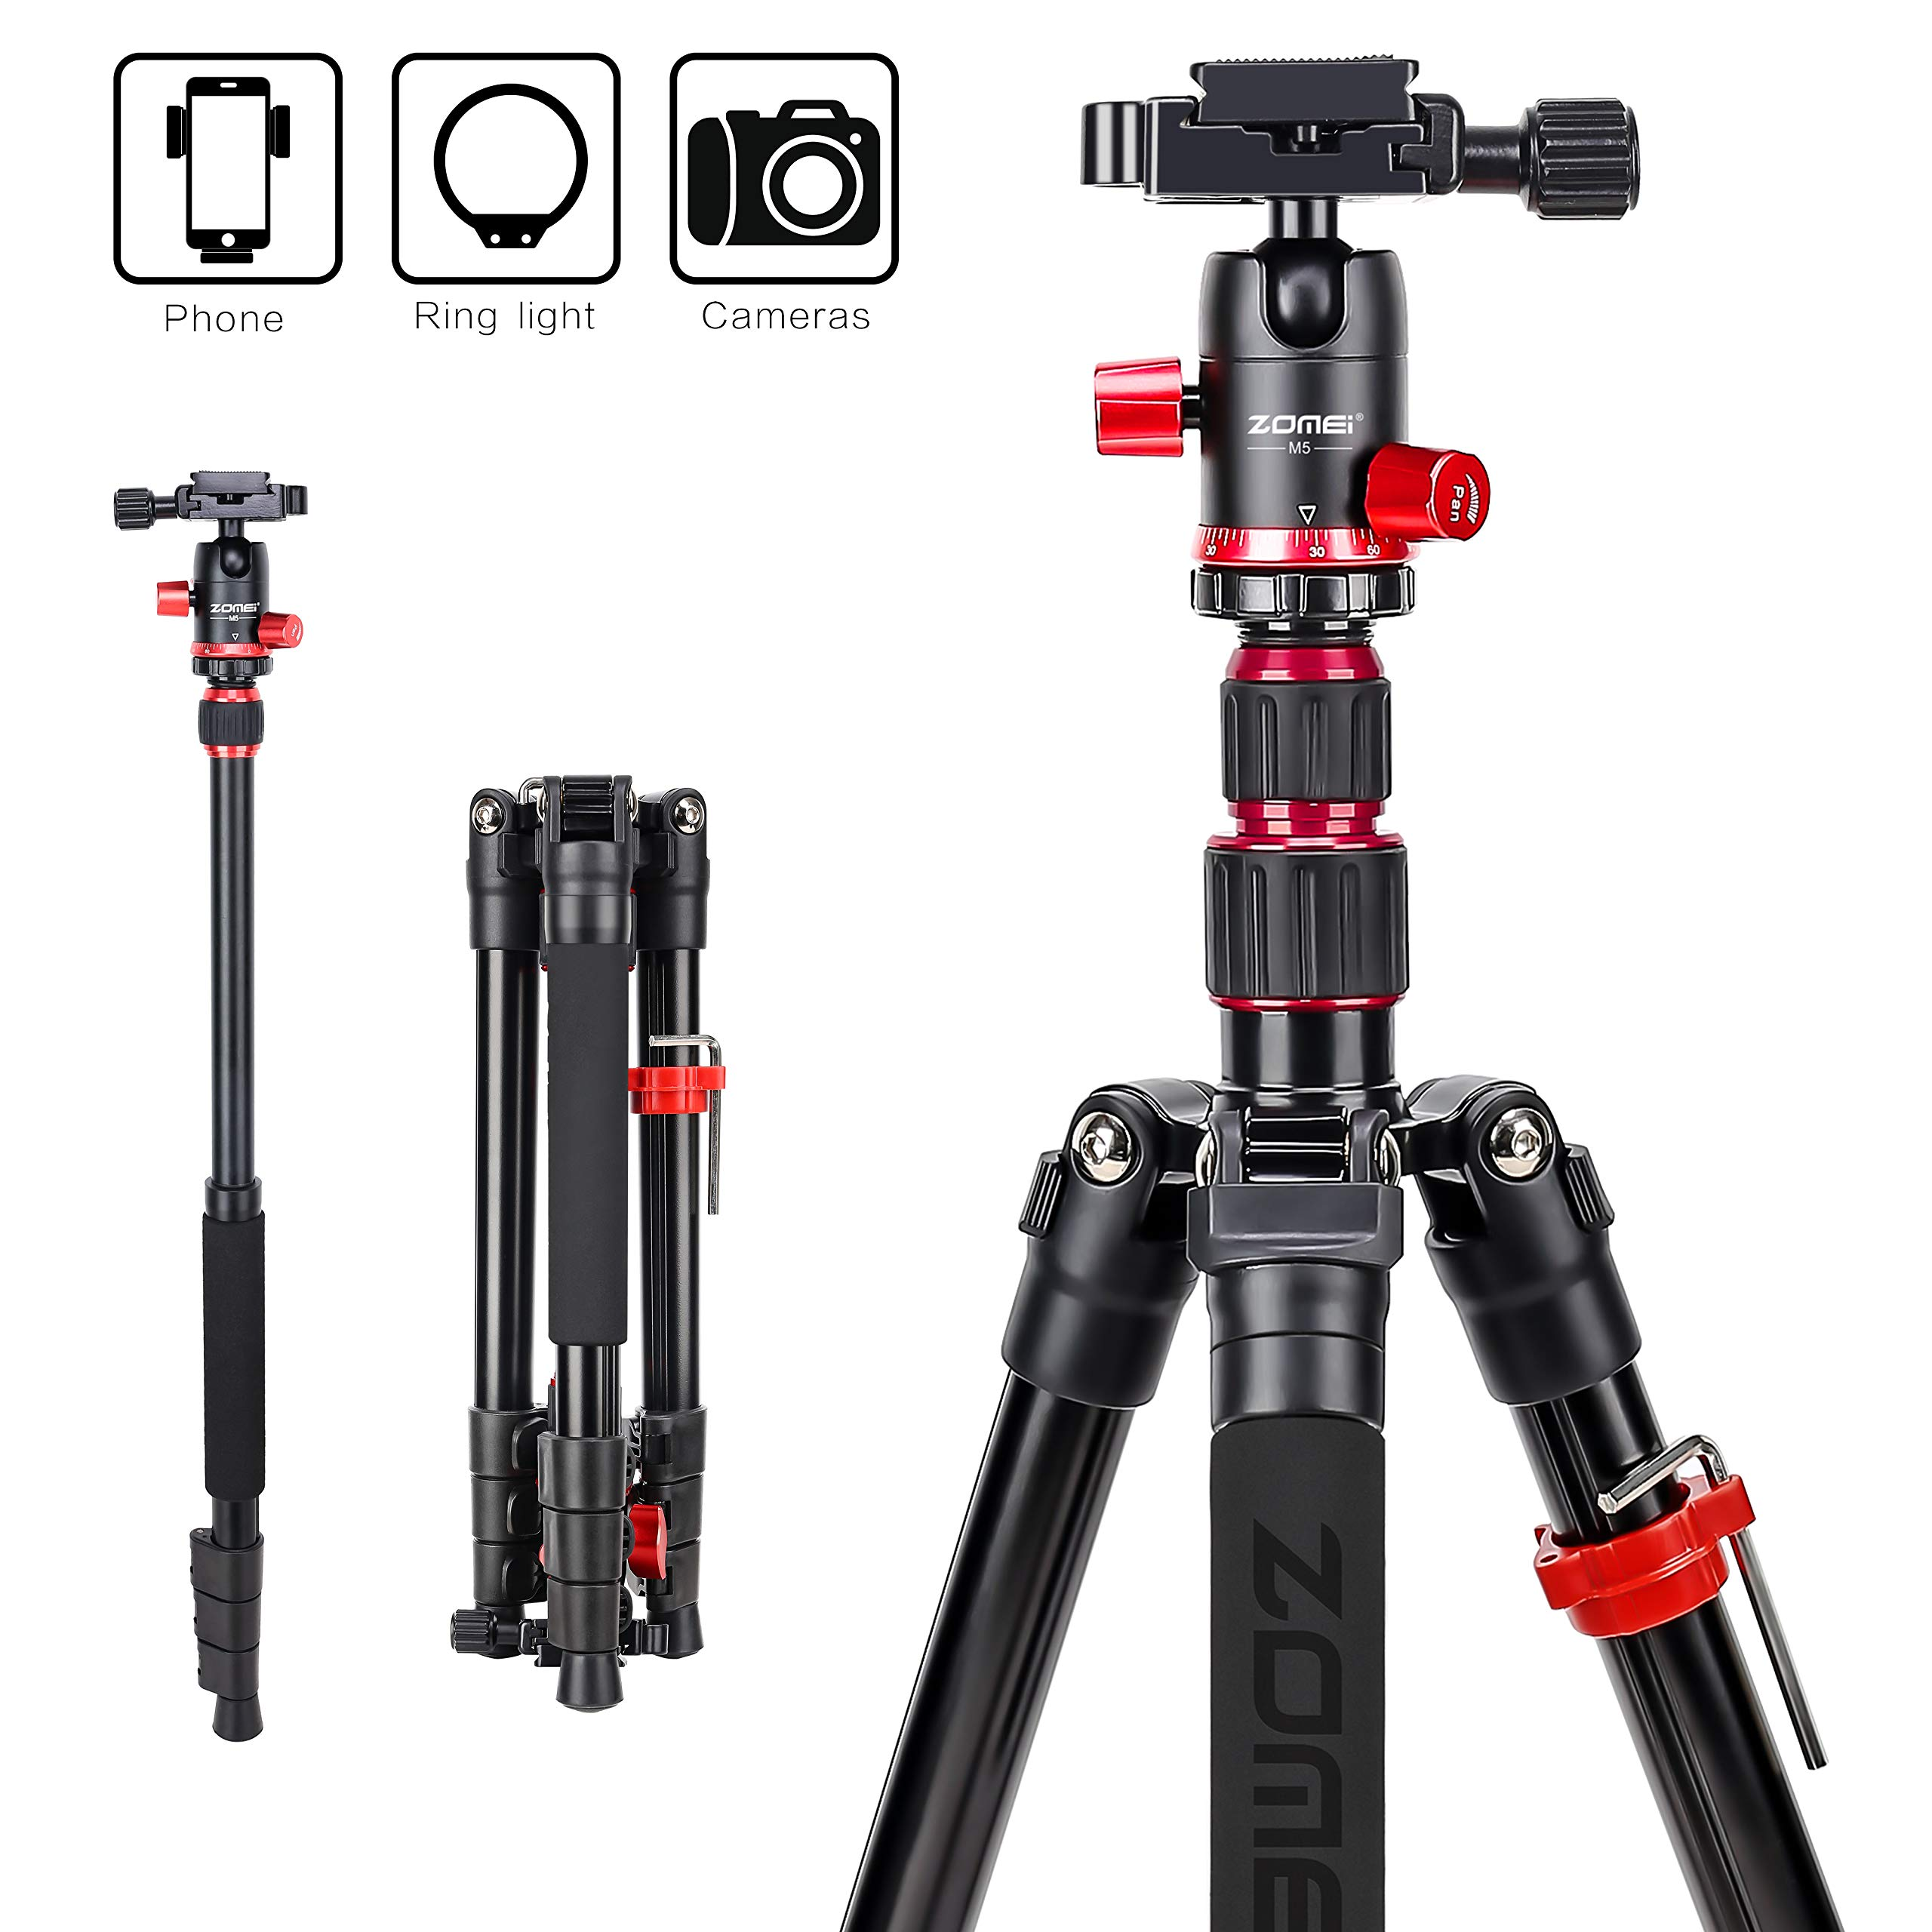 Zomei M5 Travel Camera Tripod,Lightweight Aluminum Tripod Compact Portable Stand with 360 Degree Ball Head and Carry Bag for Canon Nikon Sony Samsung Olympus DSLR